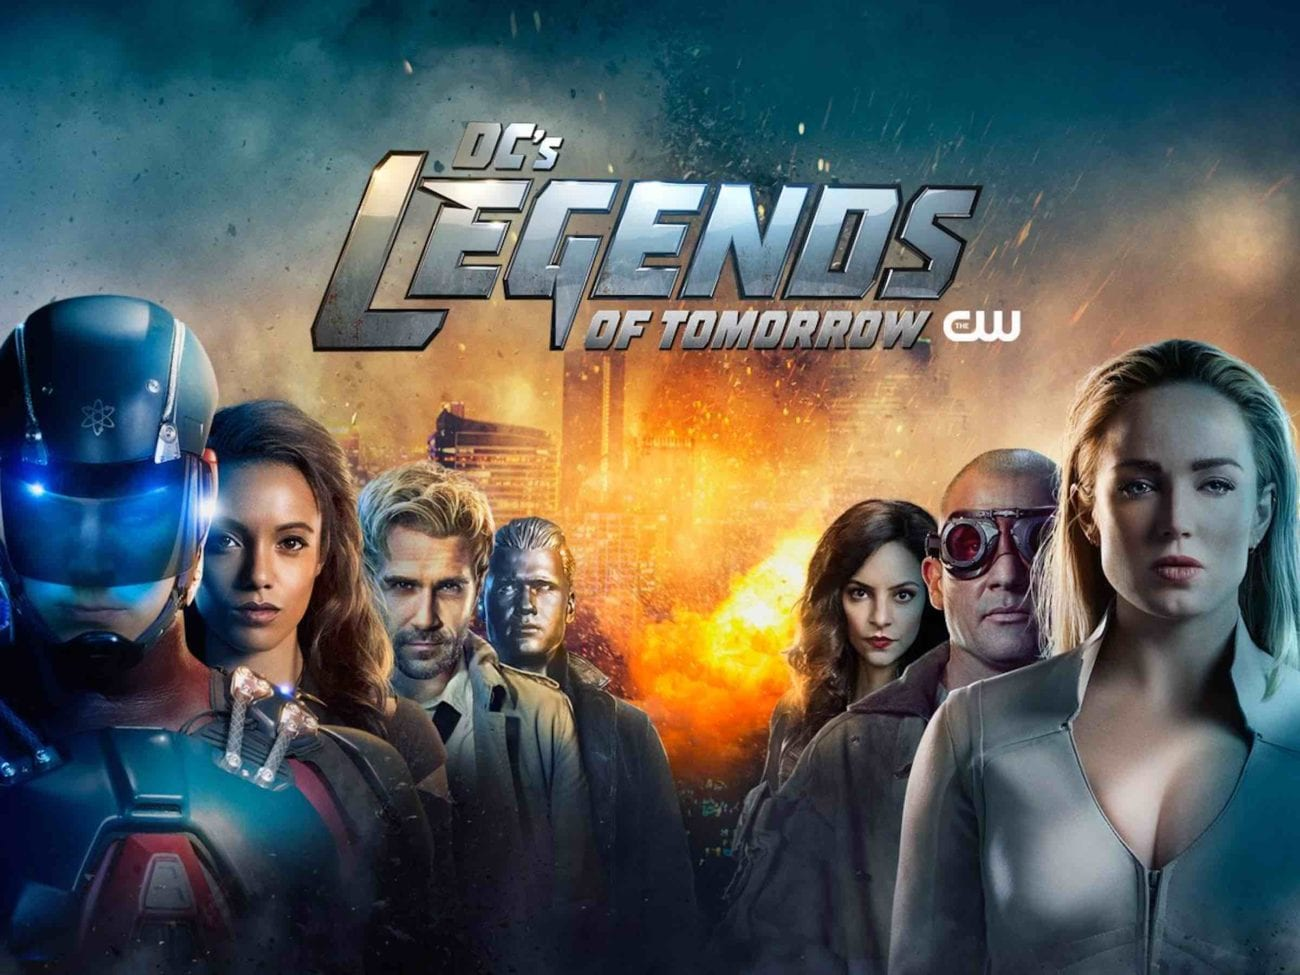 Grab your Cold Gun (too soon?) and your Timeship and see if you can save the future with our 'Legends of Tomorrow' quiz.